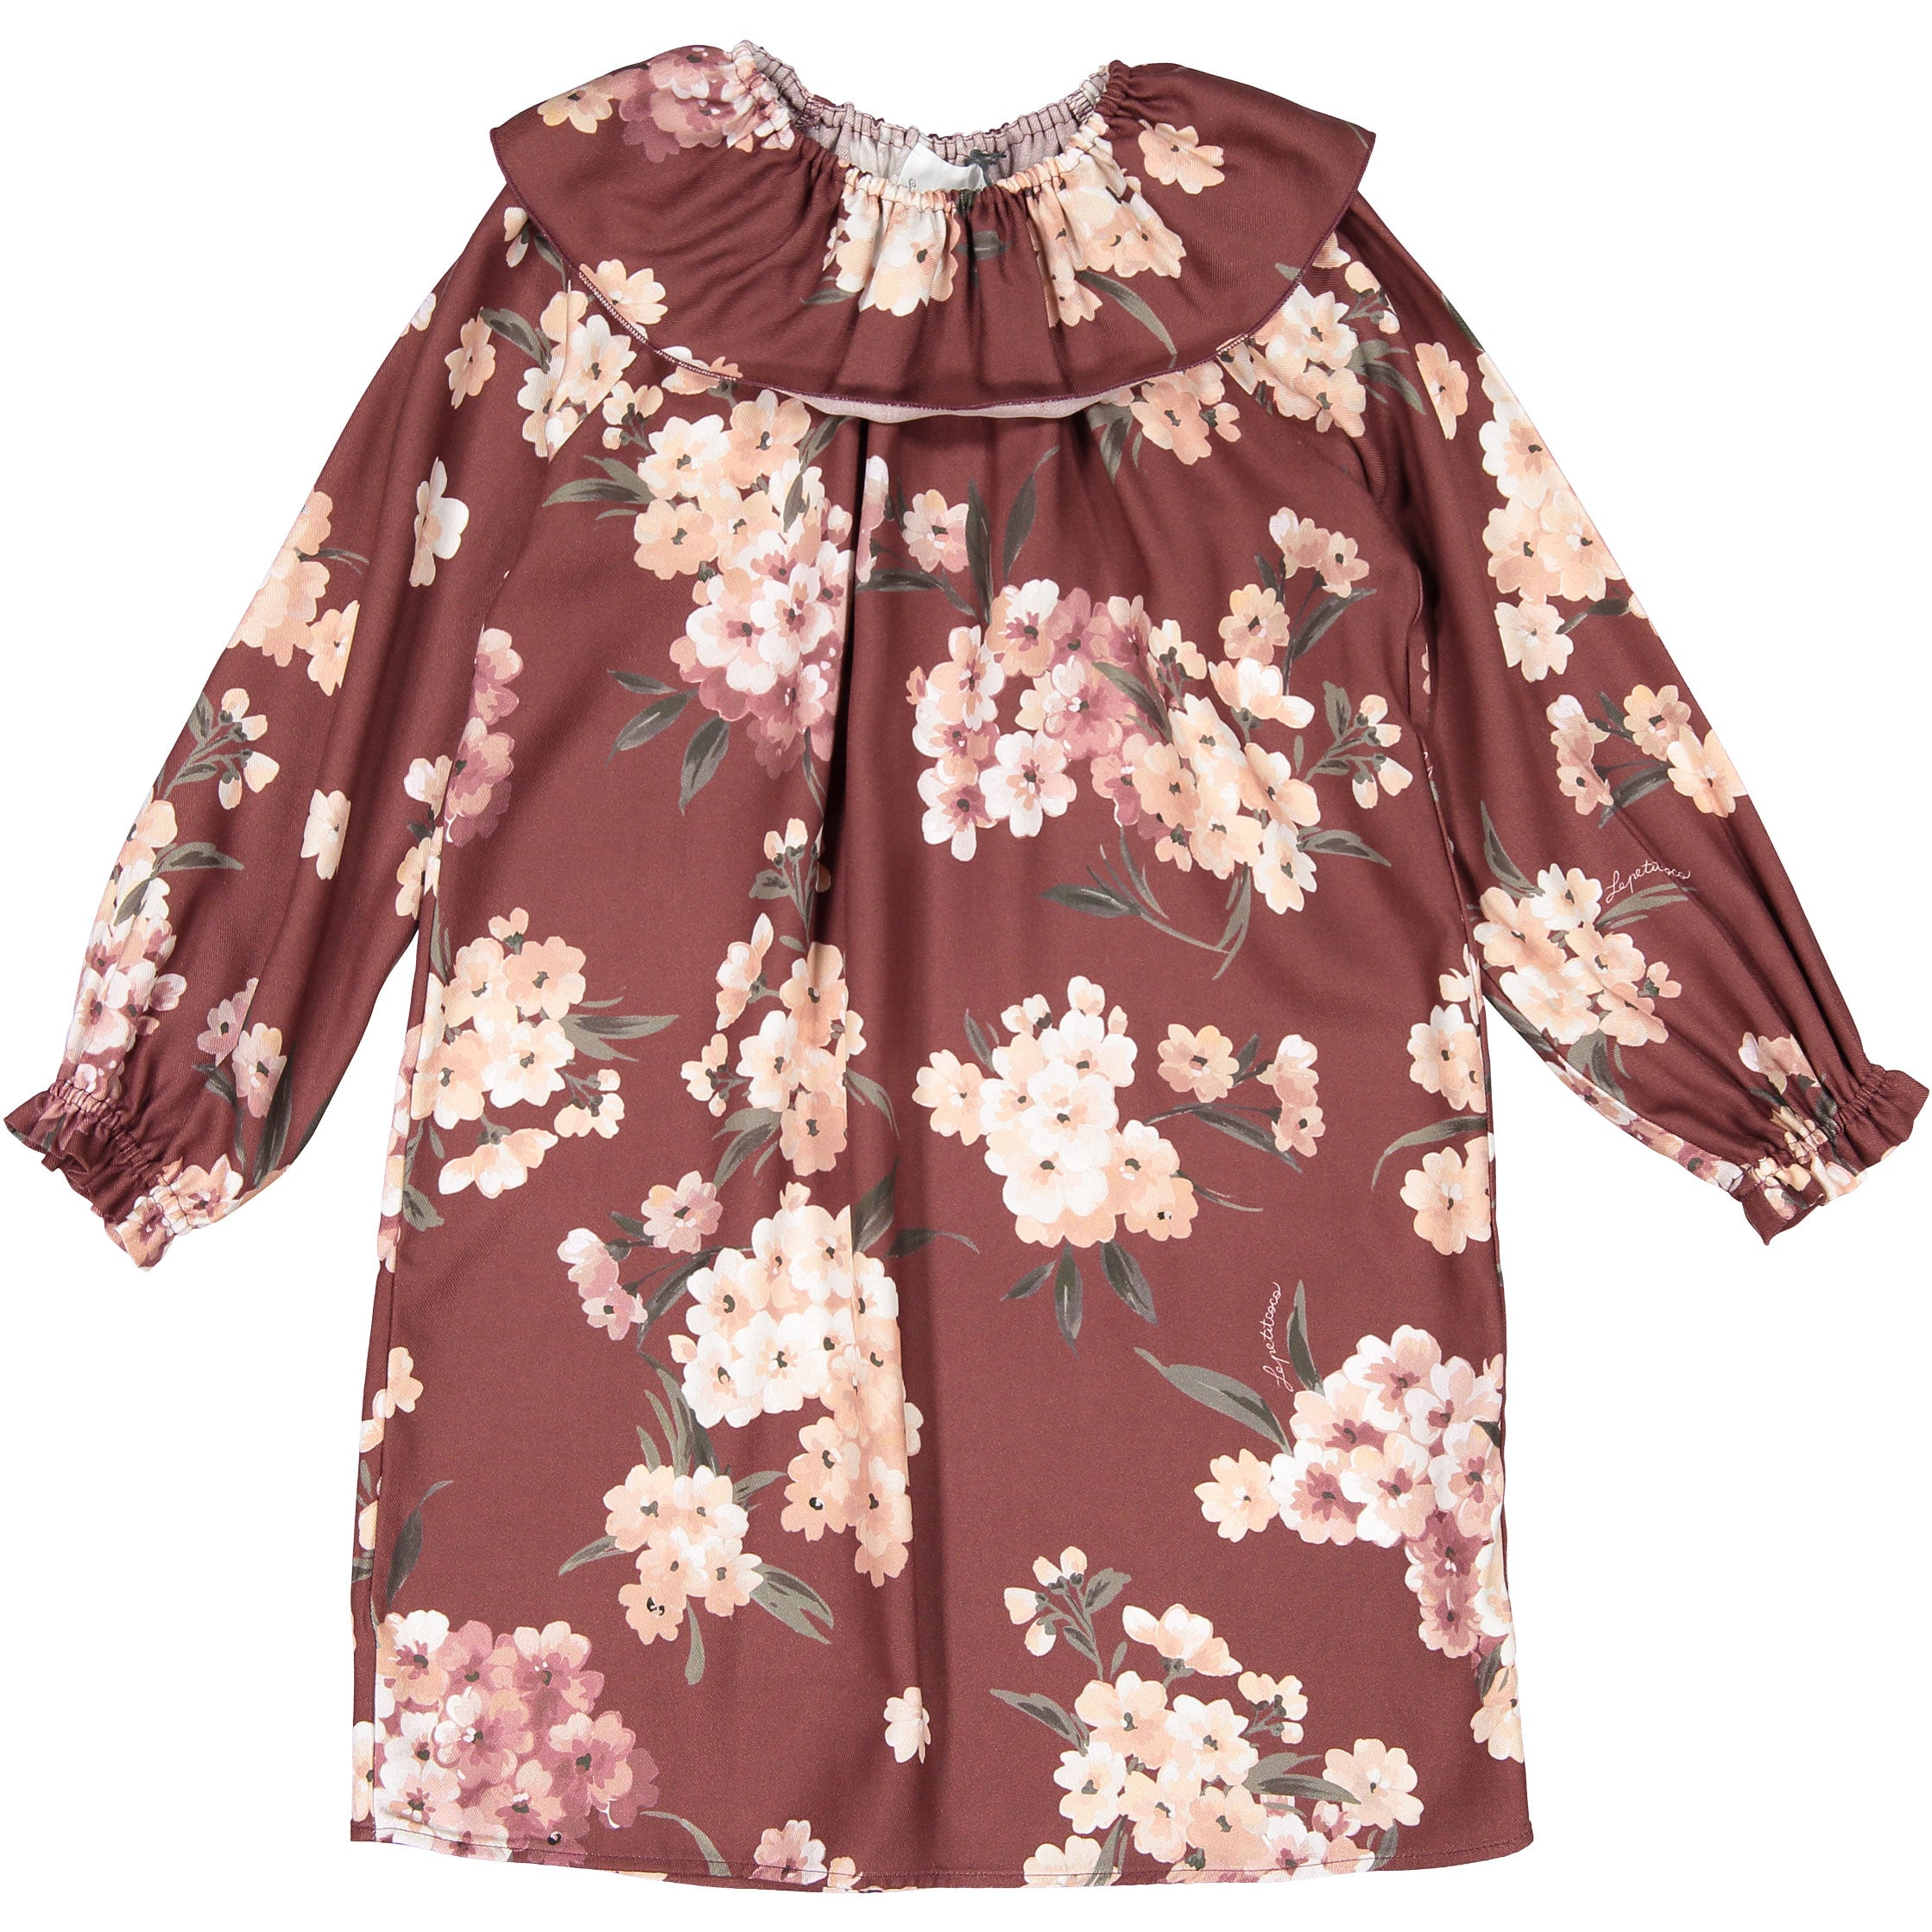 Le Petit Coco Red Floral Dress - Ladida